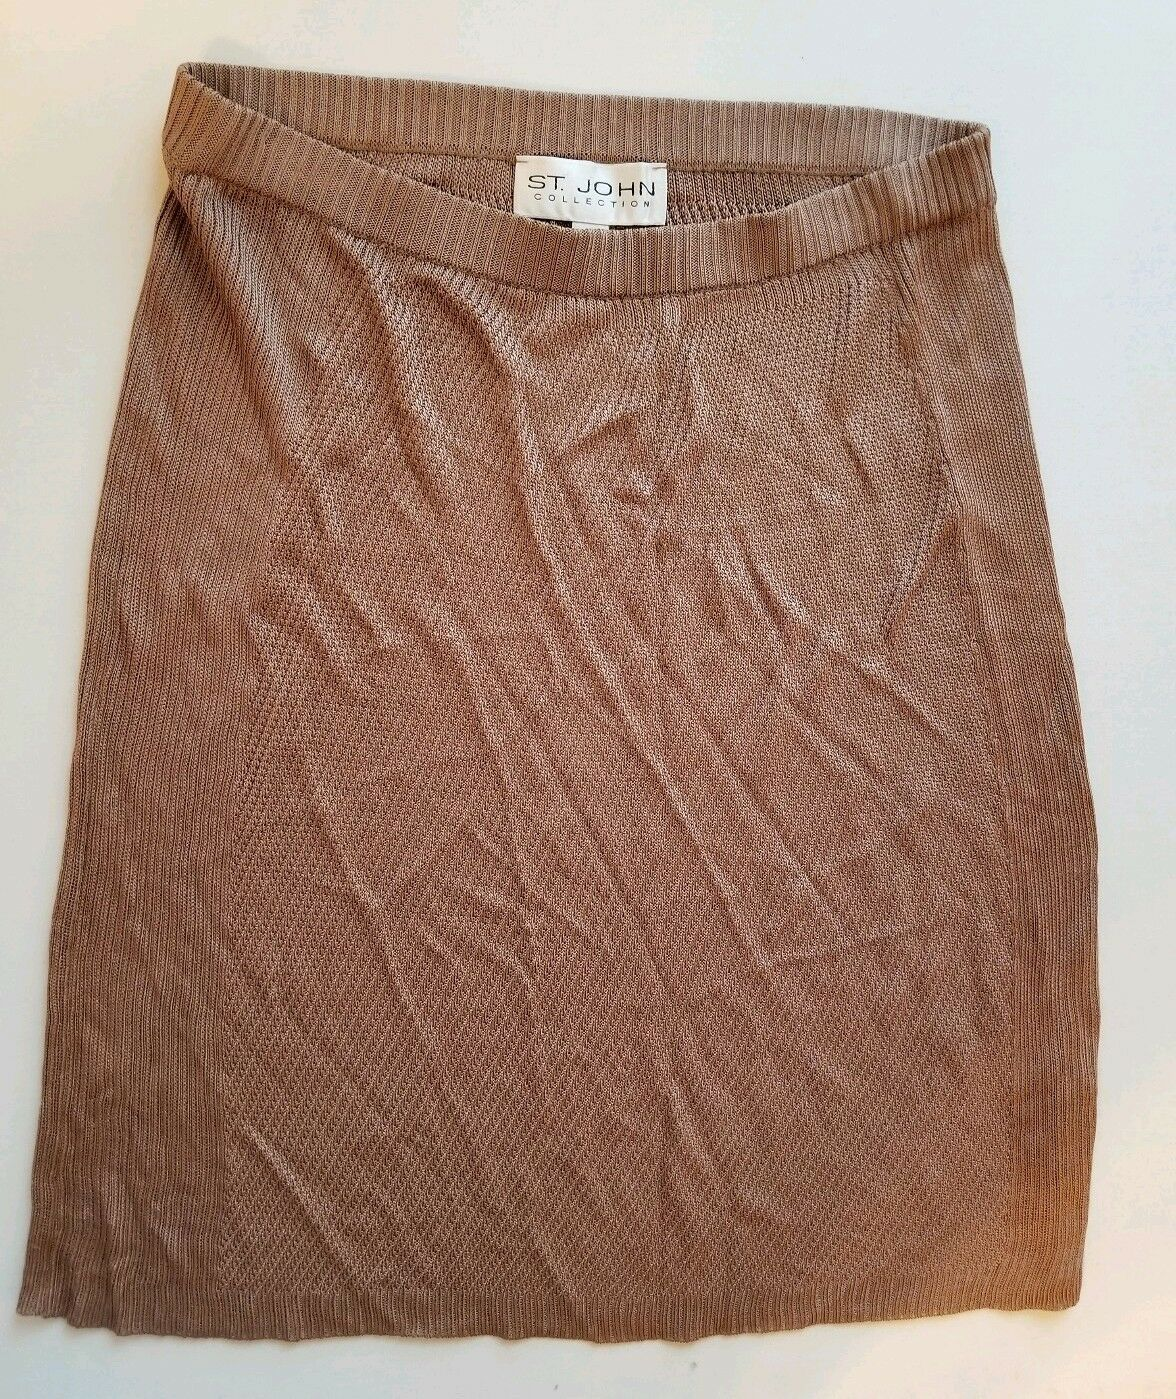 St. John Collection Beige Brown Ribbed Knit Skirt Womens Size 6